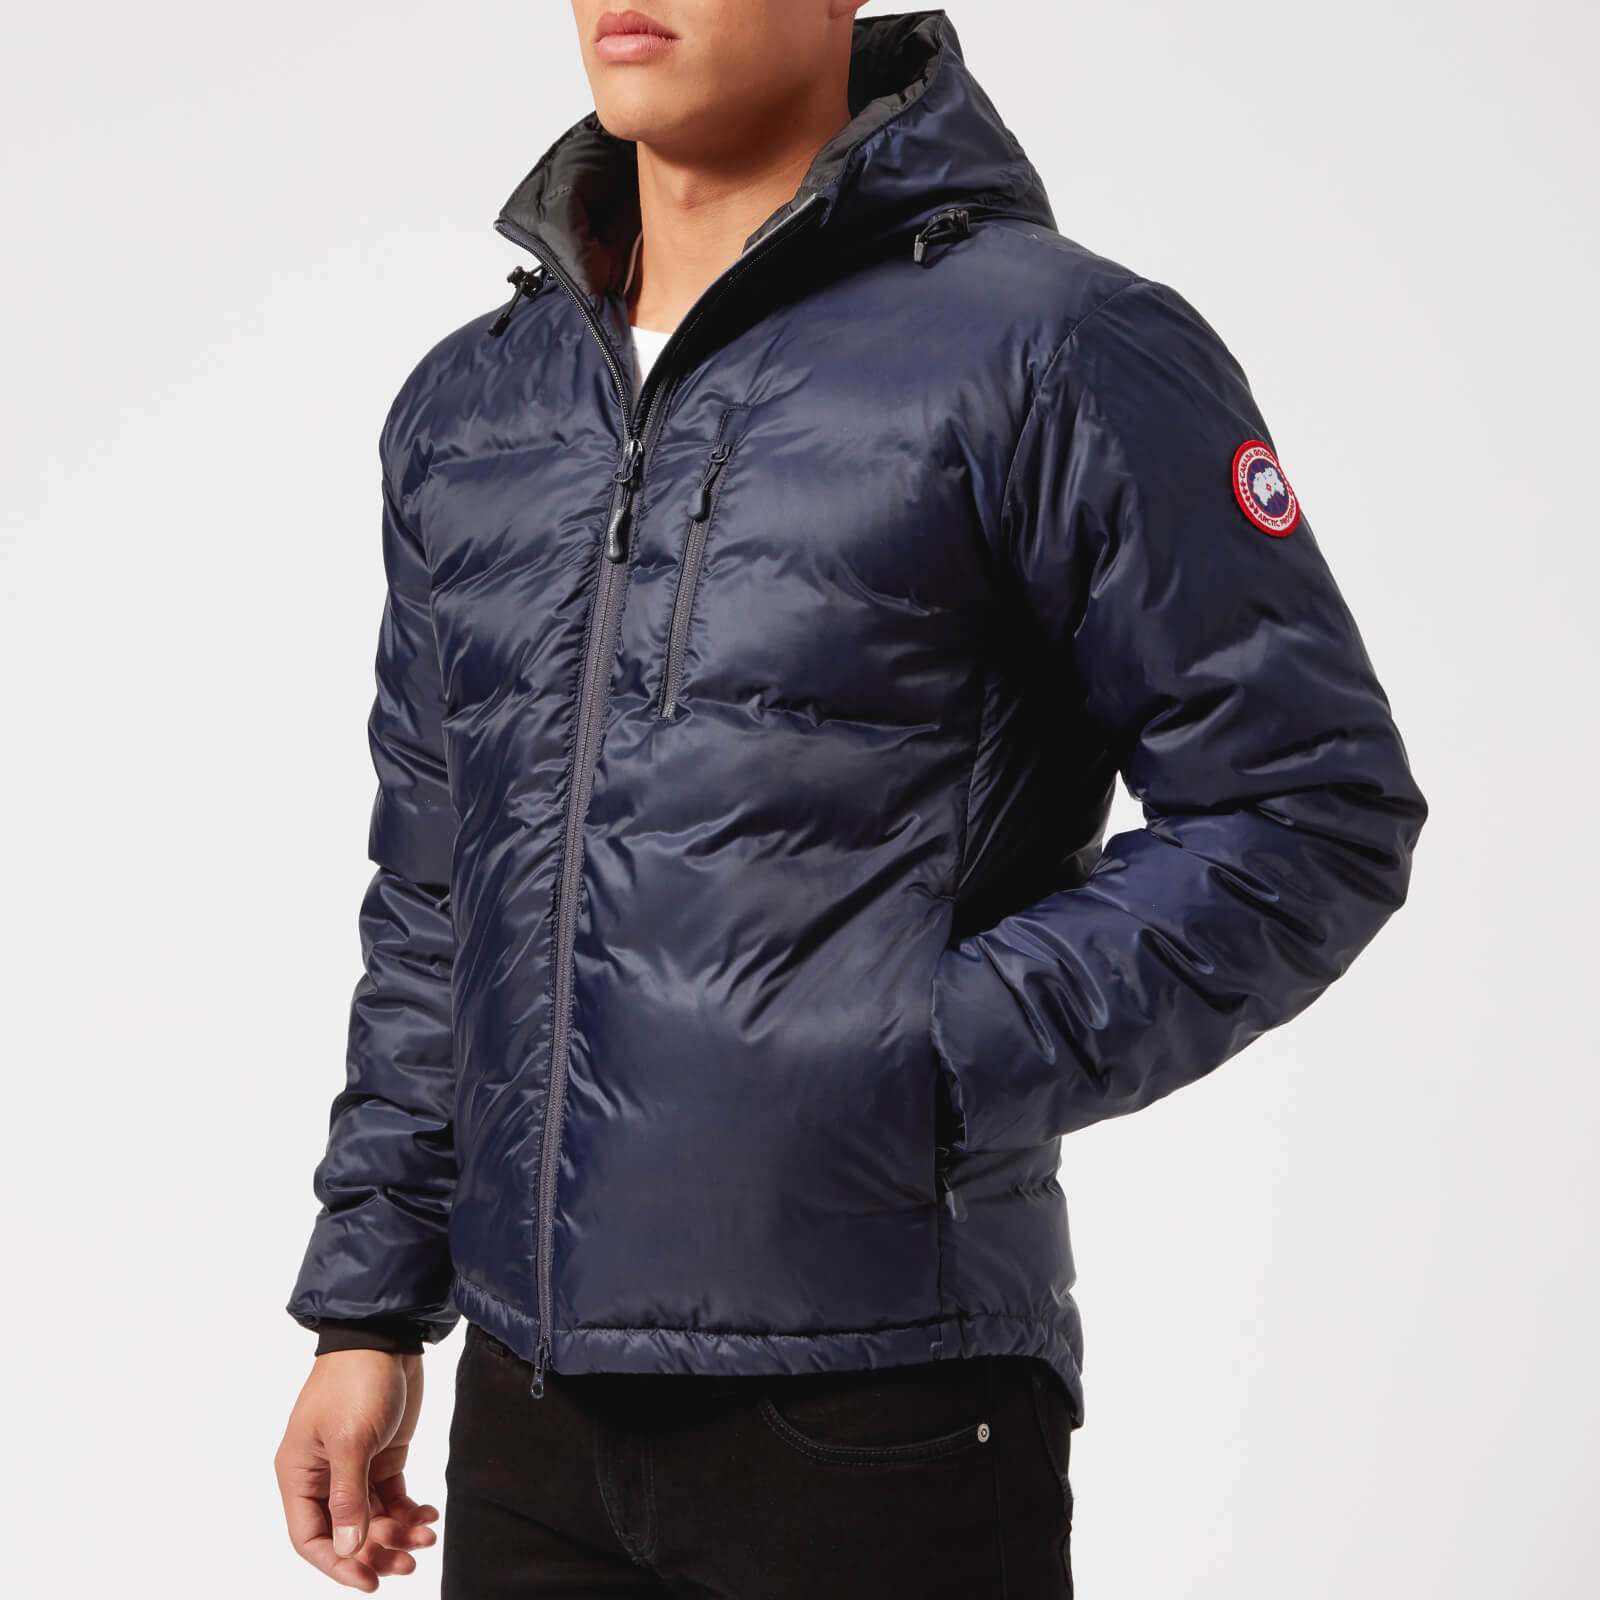 9e922d1316d8 Canada Goose Men s Lodge Hoody Jacket - Blue Black - Free UK Delivery over  £50